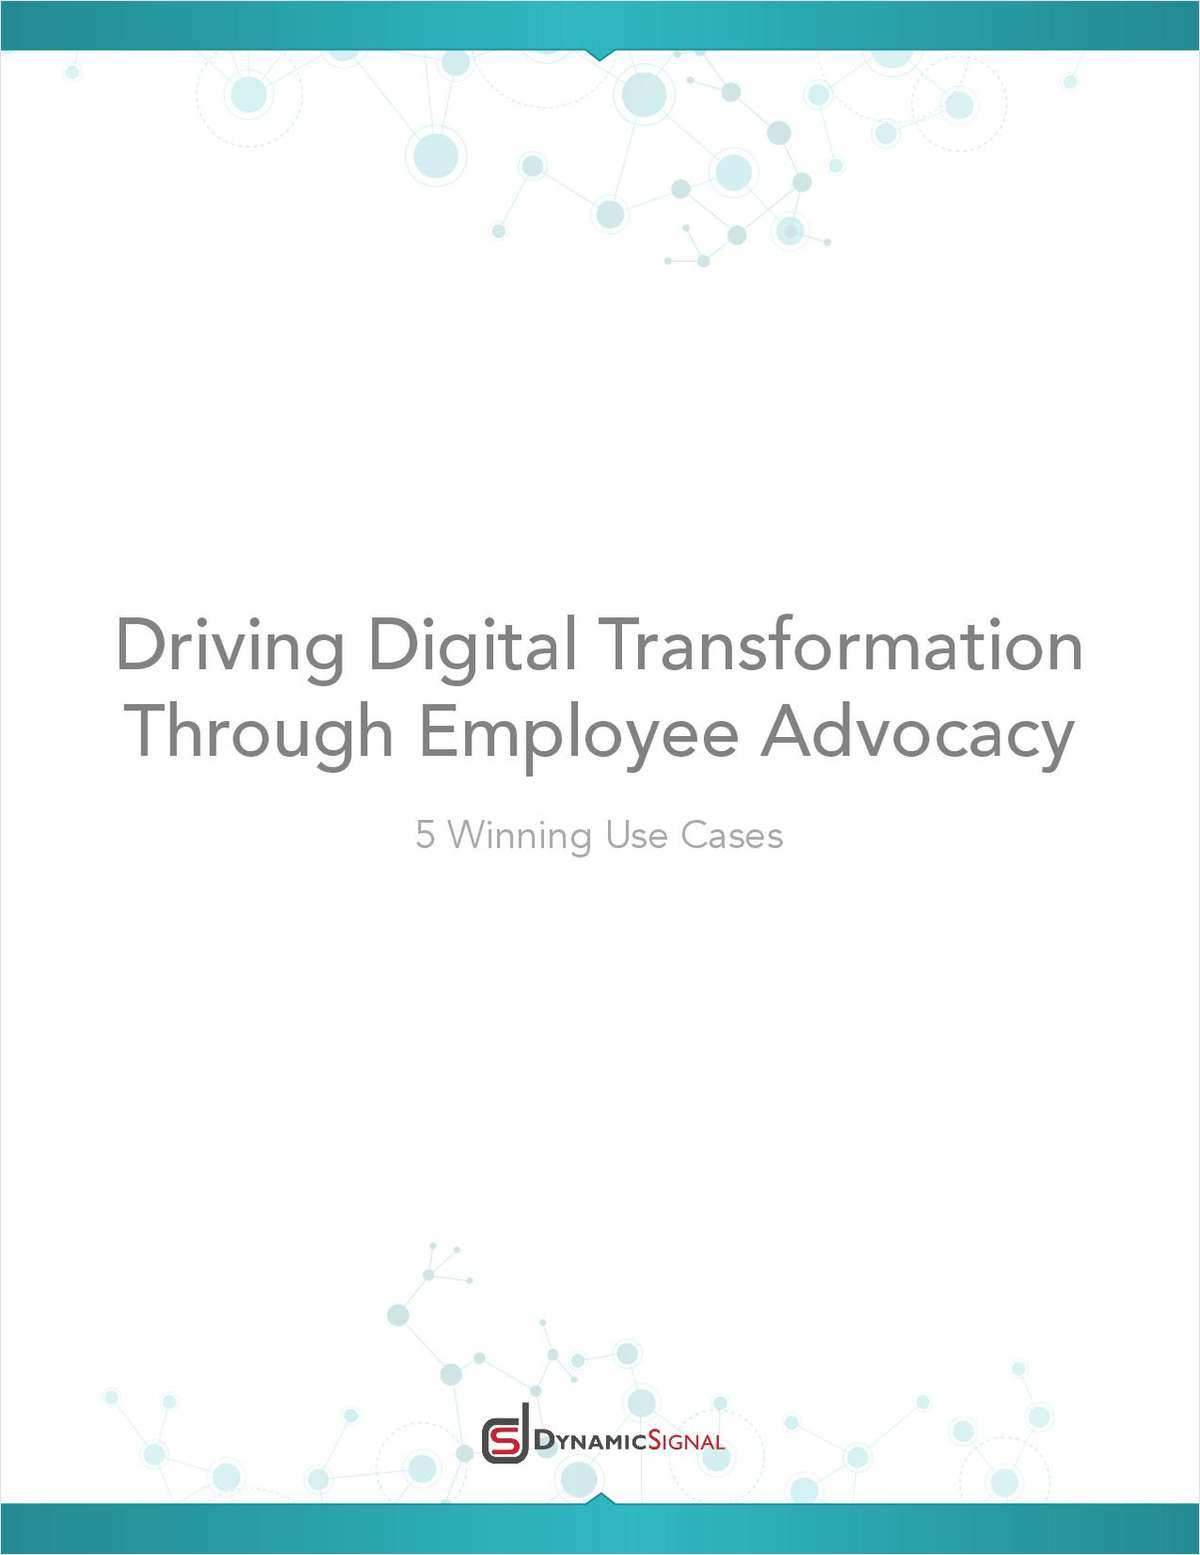 How to Drive a Digital Transformation Through Employee Advocacy